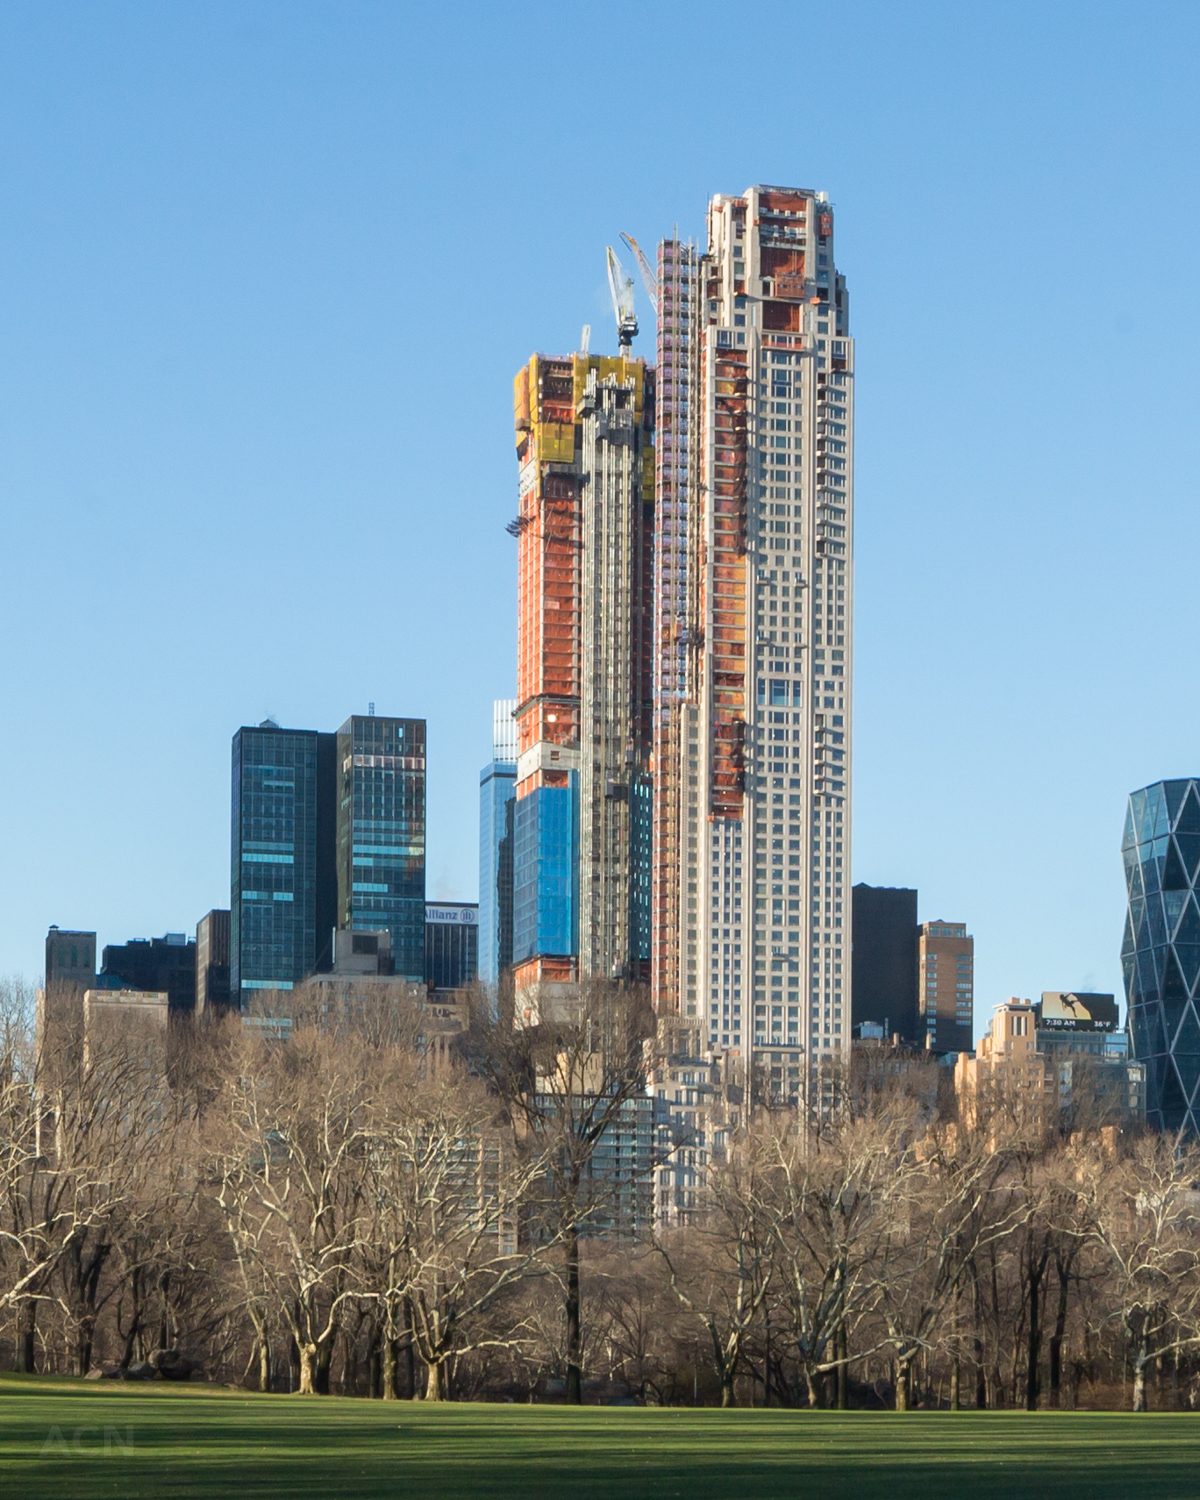 220 Central Park South Apartment: $238 Million Sale Of 220 Central Park South's Penthouse